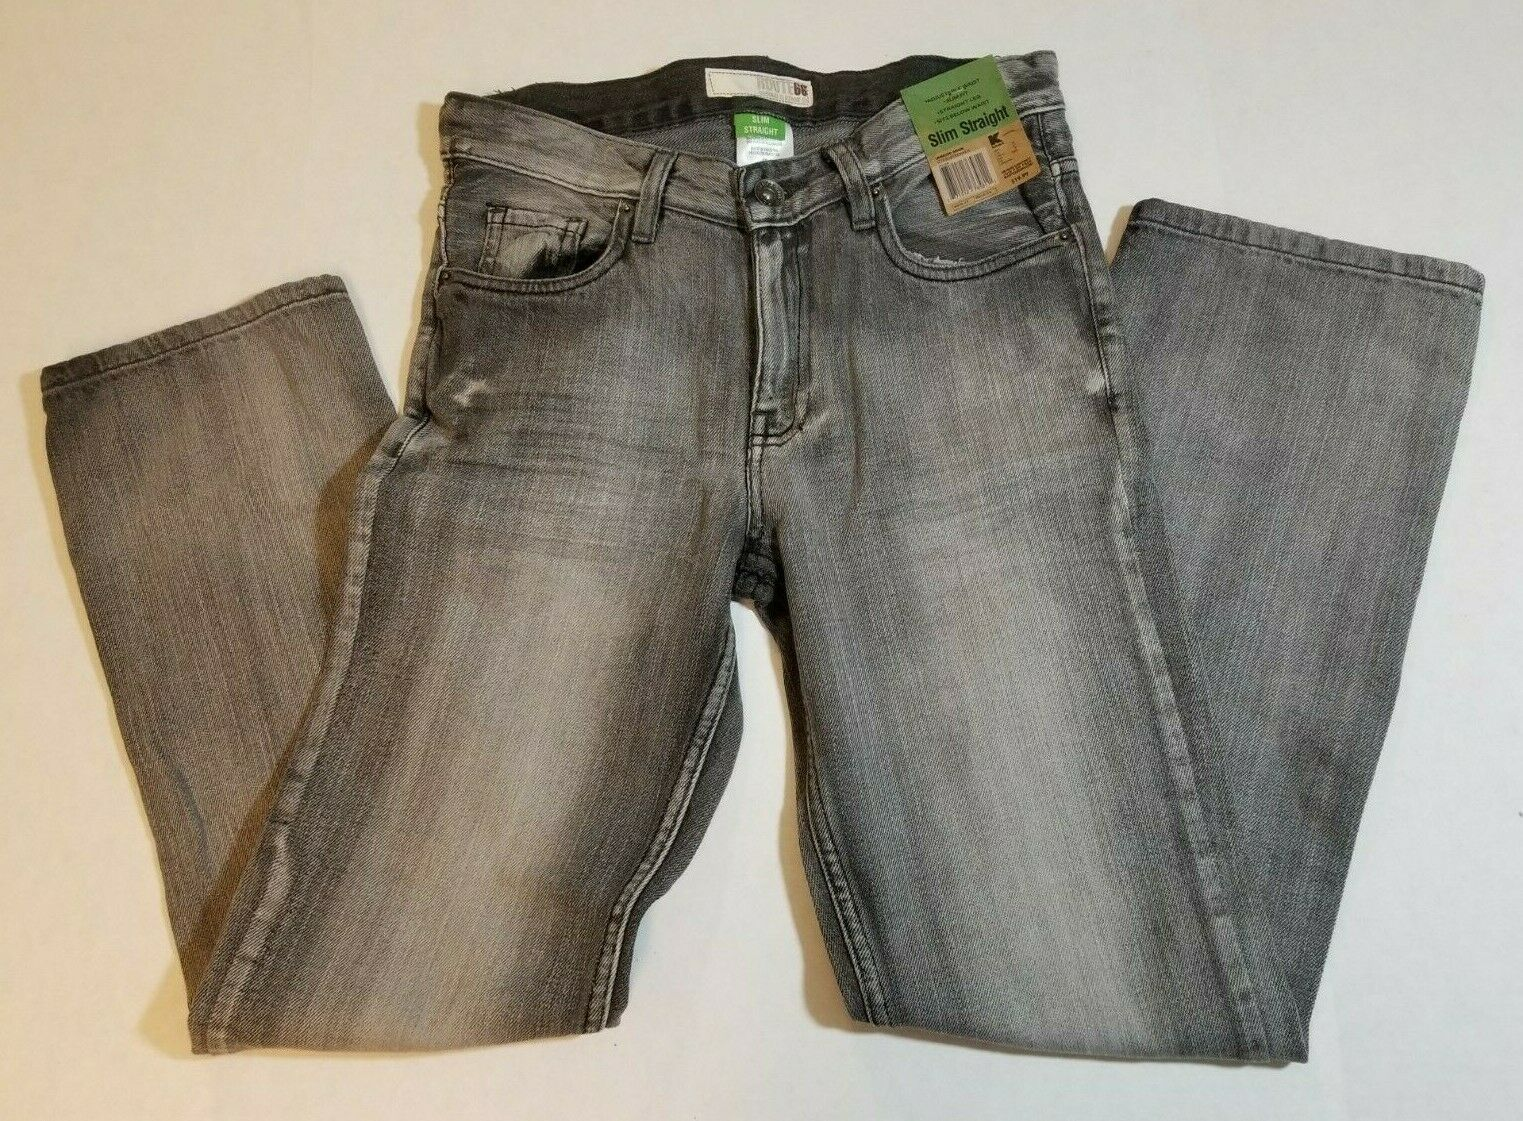 NWT Route 66 Boys Youth Slim Straight Jeans Size 12 Black Denim Pants image 2